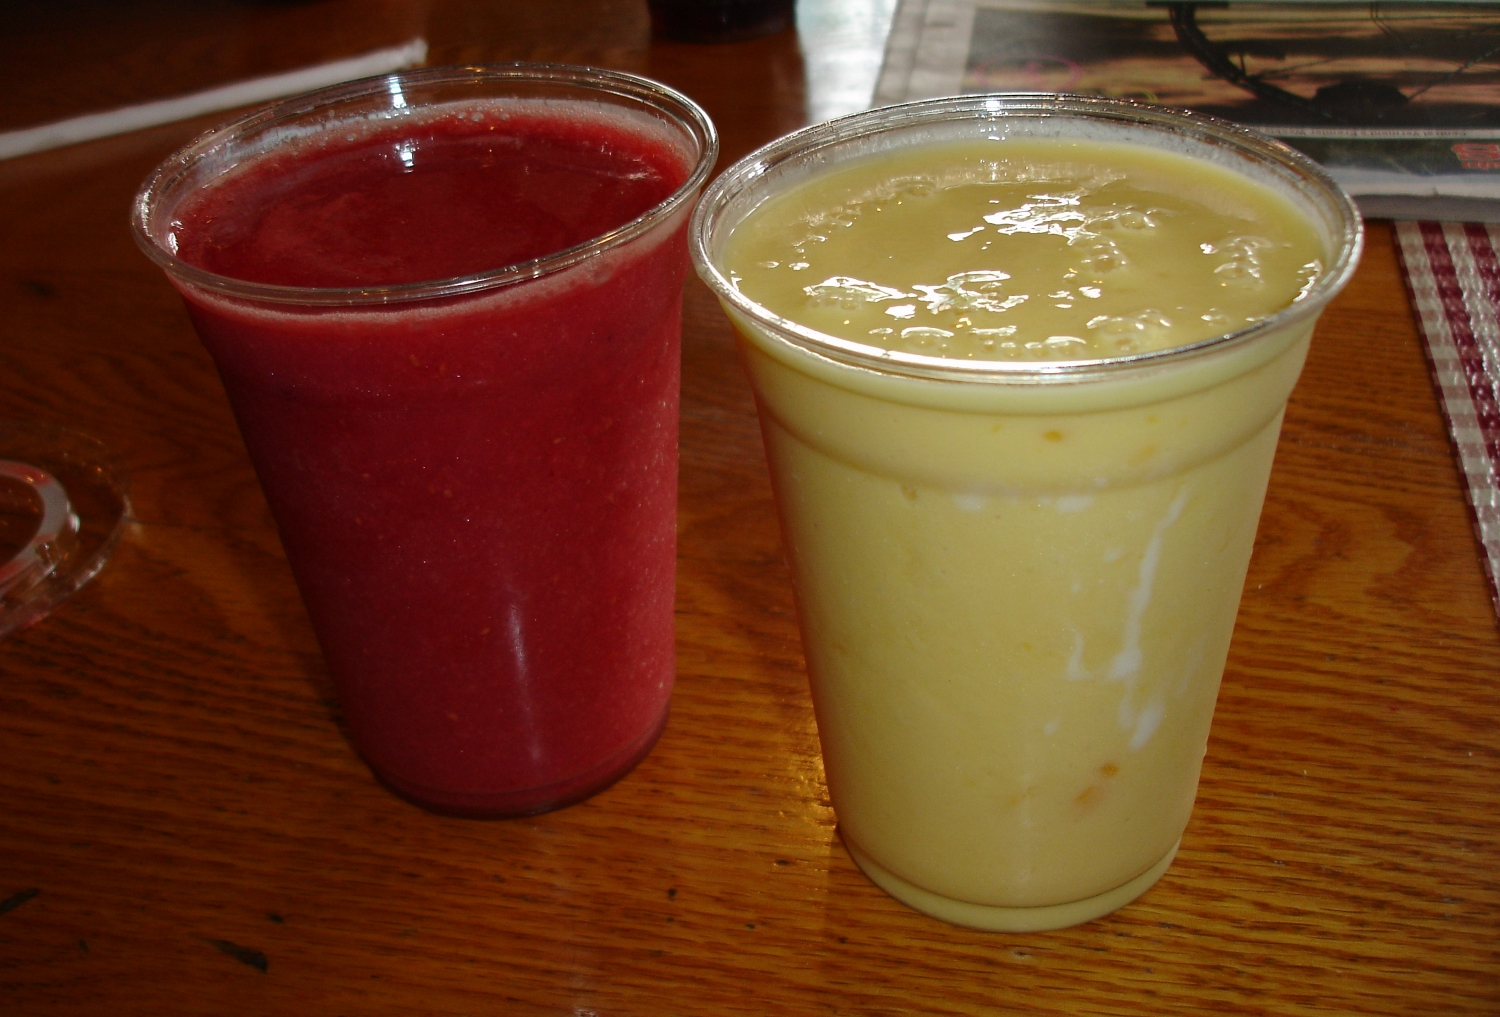 The Very Berry Smoothie and a smoothie special, Mango Lassi